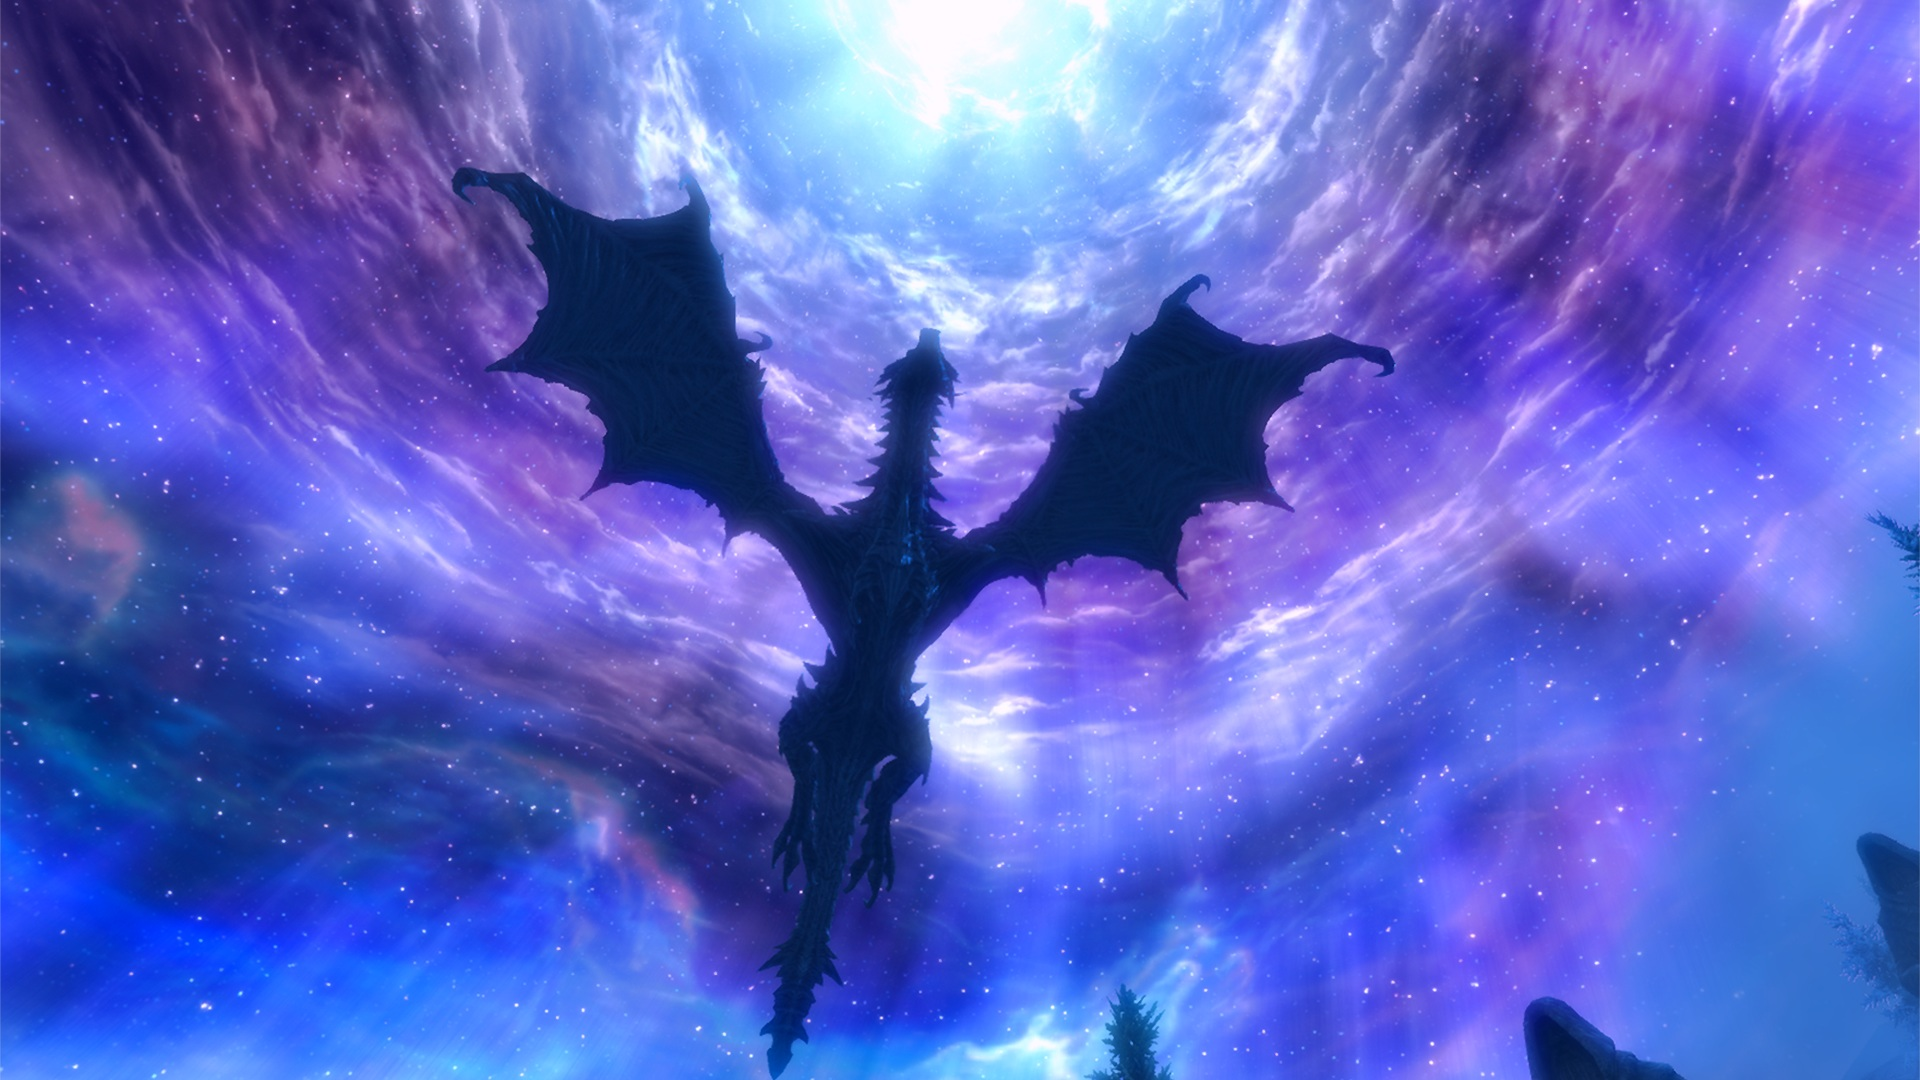 Dragon in the sky from the game The Elder Scrolls, Skyrim